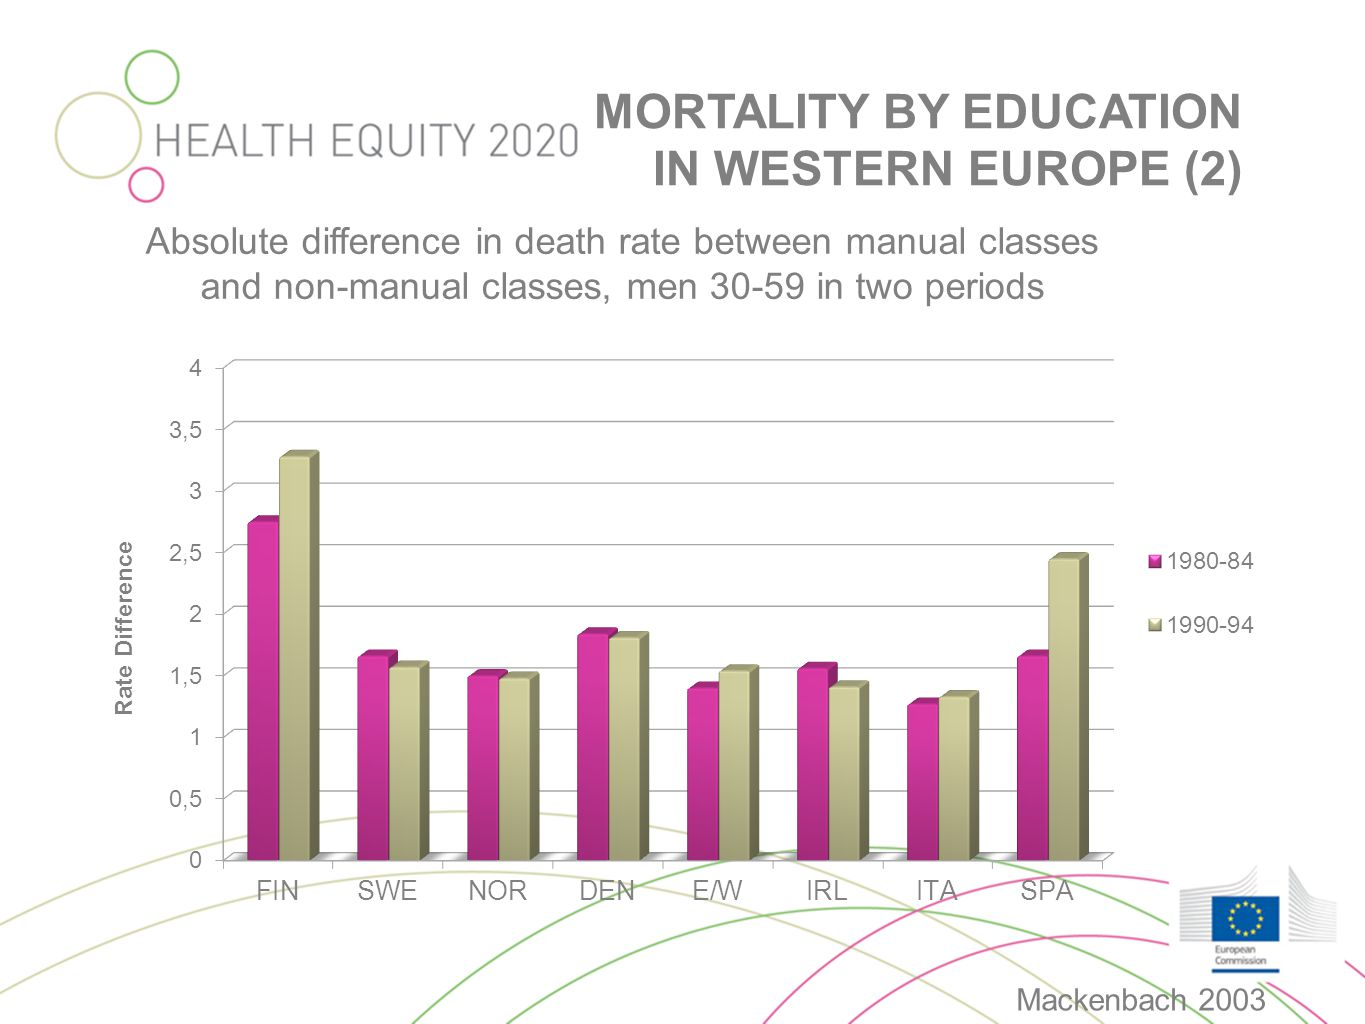 Absolute difference in death rate between manual classes and non-manual classes, men 30-59 in two periods MORTALITY BY EDUCATION IN WESTERN EUROPE (2)